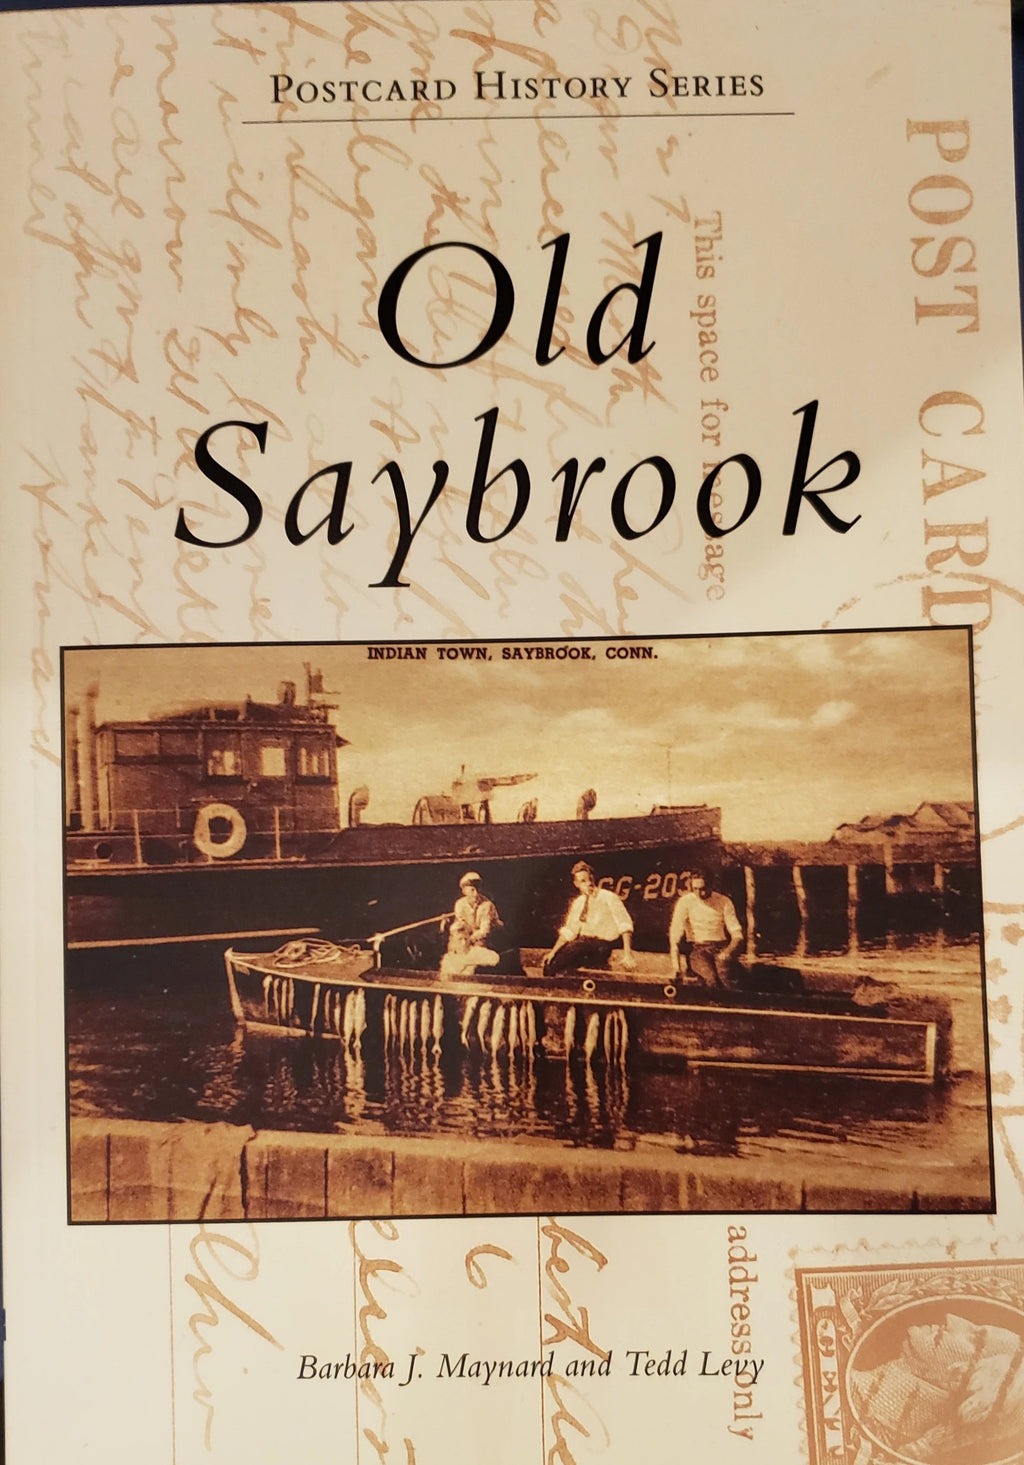 Old Saybrook, Postcard History Series by Barbara J. Maynard & Tedd Levy